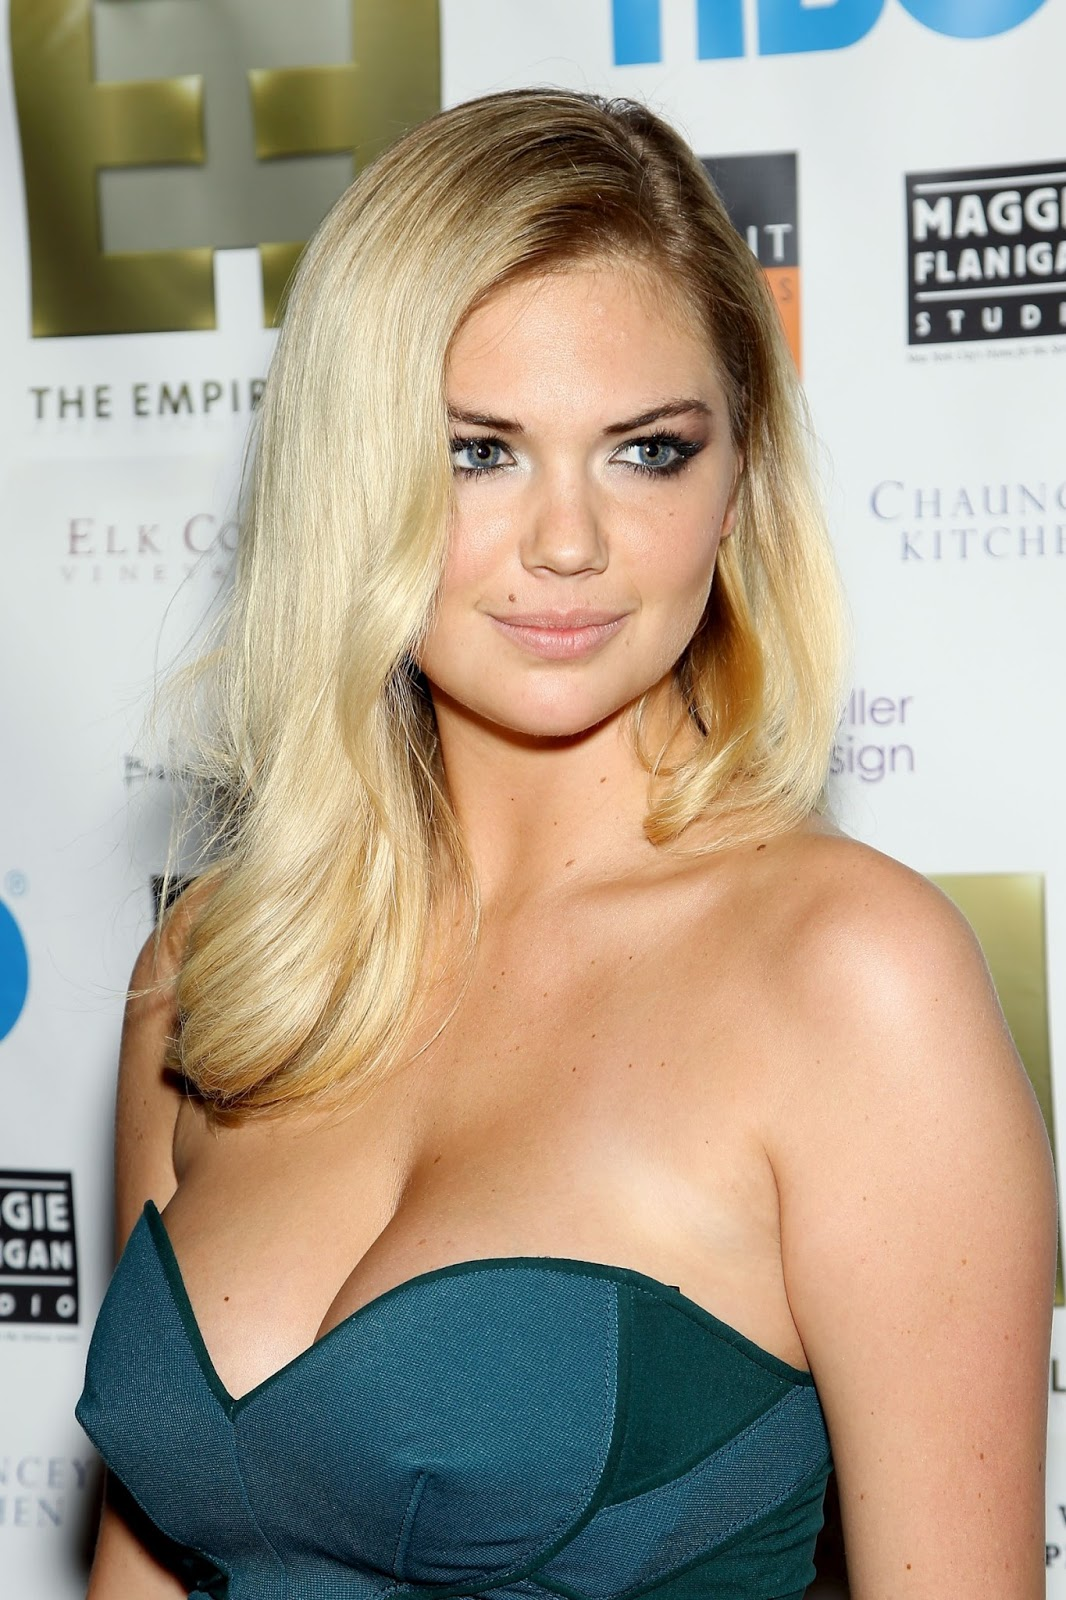 kate upton hd wallpapers ~ actress hd wallpapers